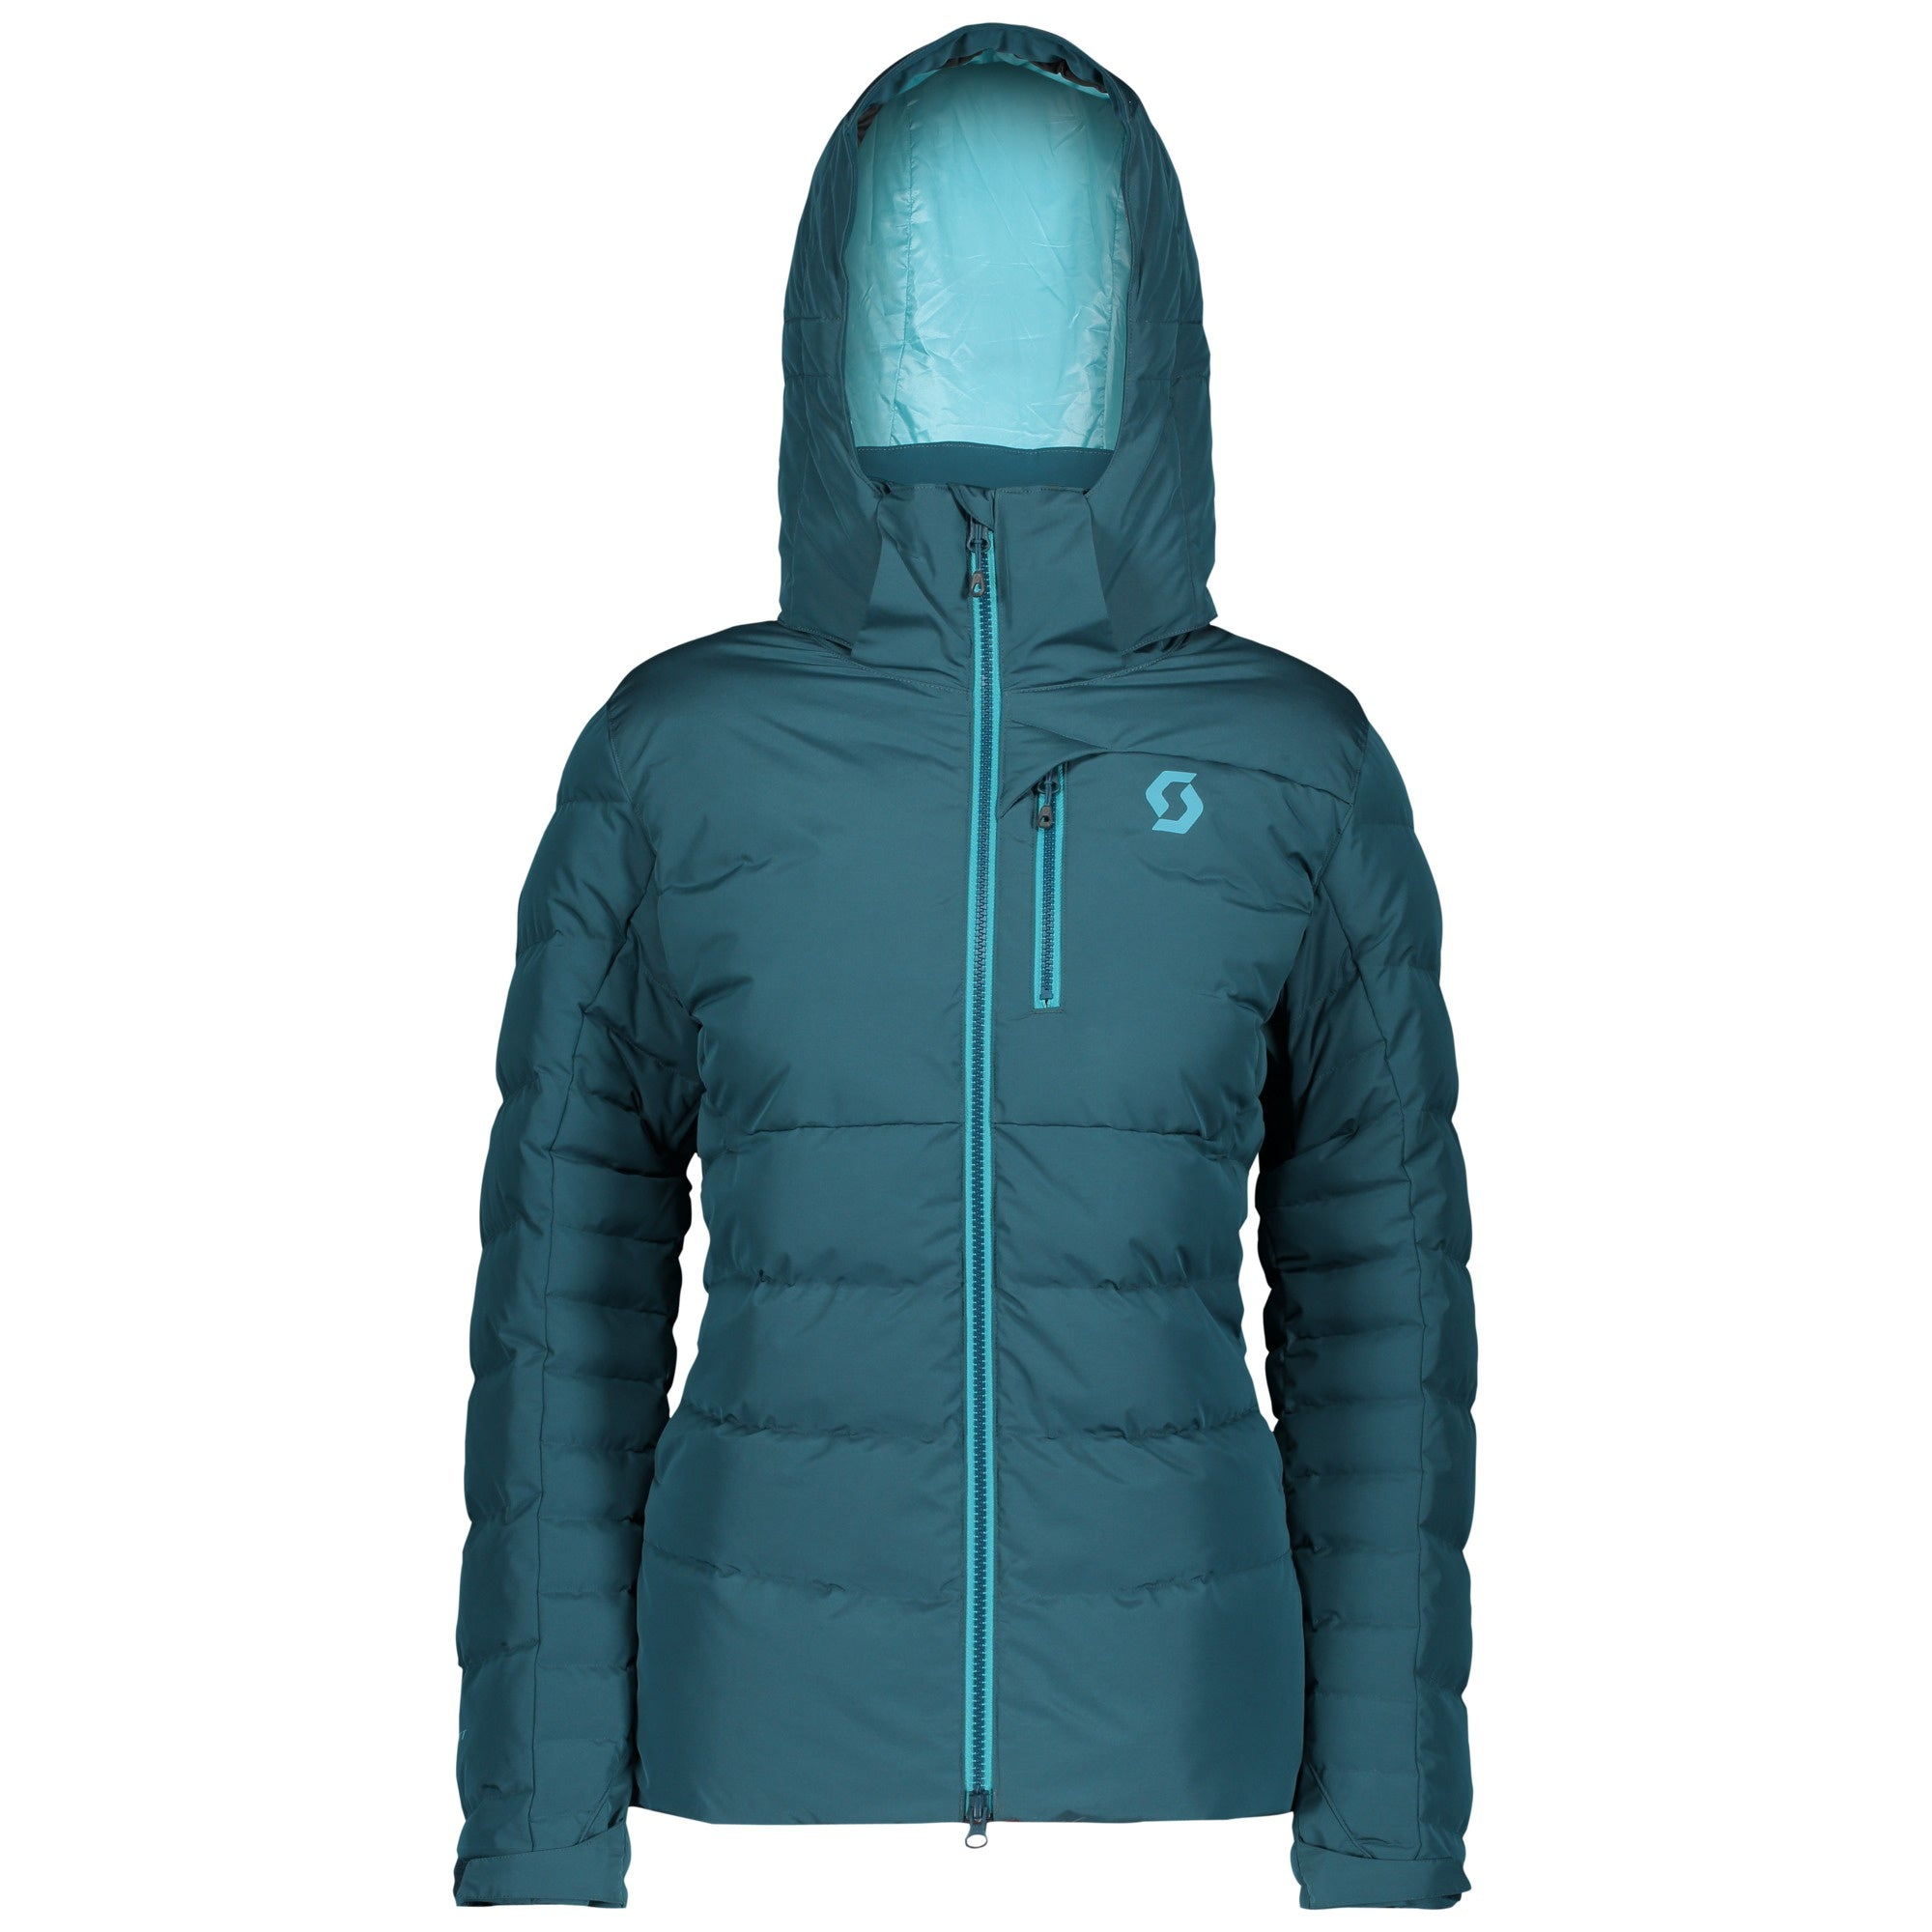 Scott 2021 Women's Ultimate Down Jacket